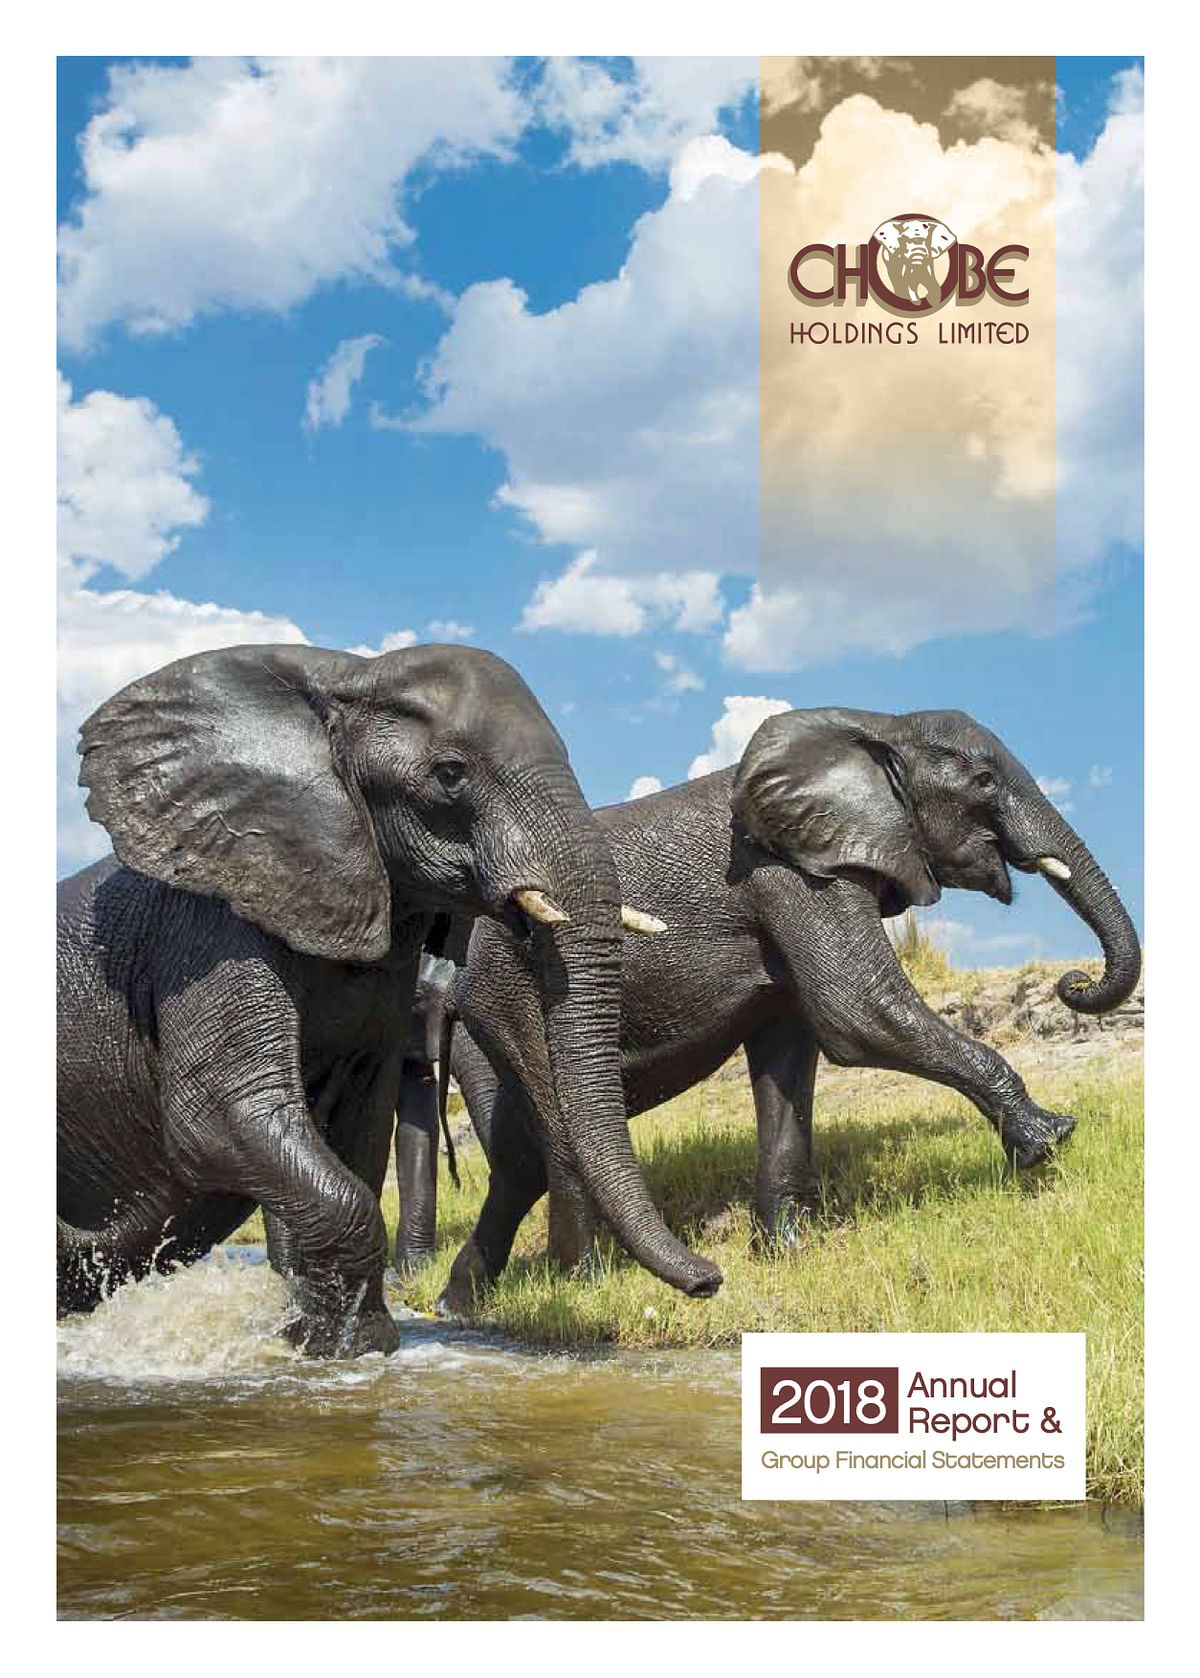 Chobe Holdings Limited Annual Report 2018